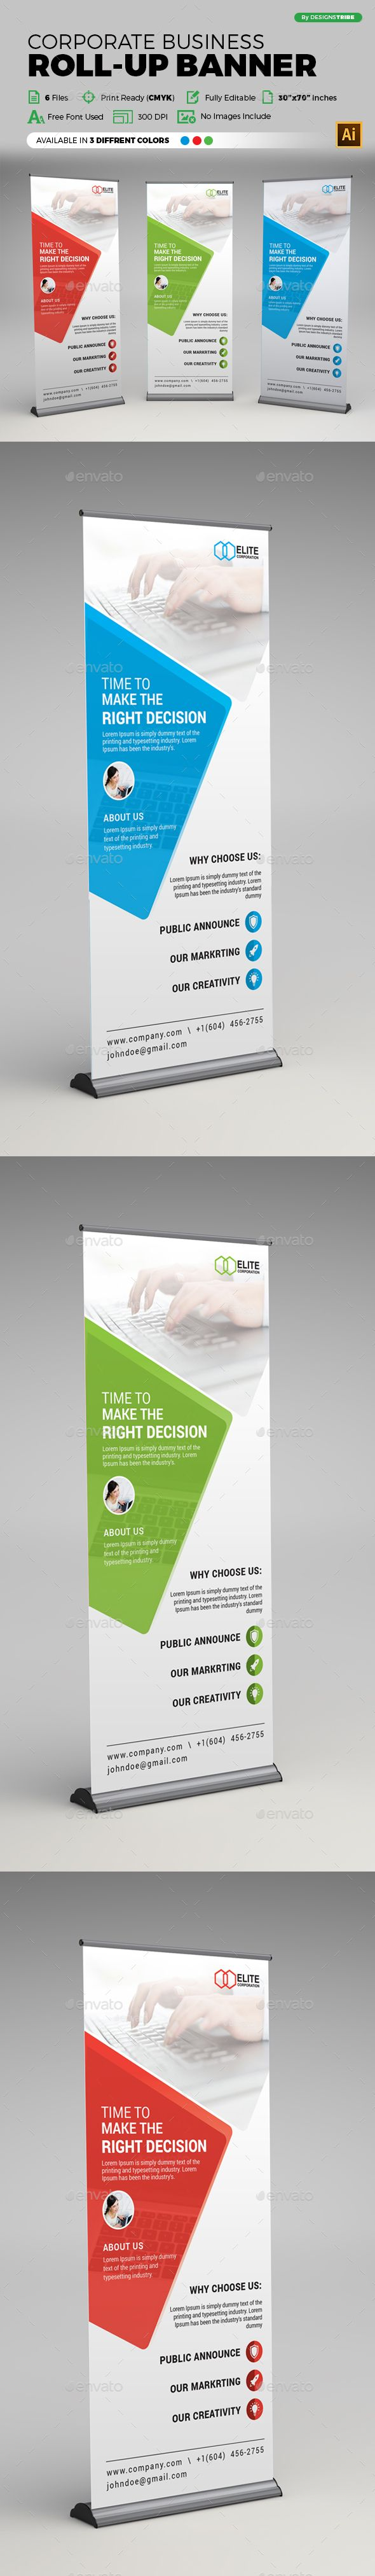 Corporate Business Roll-up Banner by arsalanhanif Corporate Business Roll-up Ban...